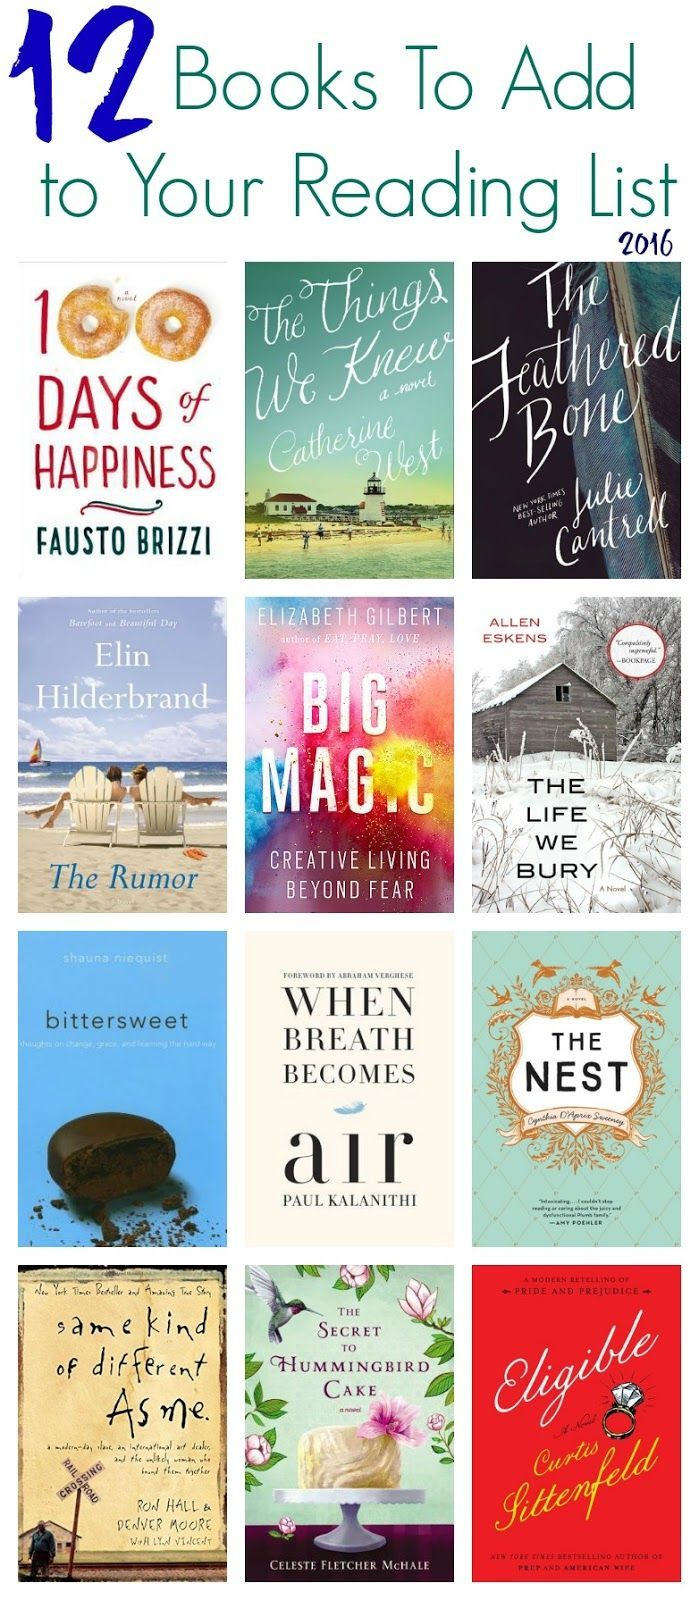 66 best moms gift ideas for families friends images on pinterest 12 books to read in 2016 the chirping moms fandeluxe Choice Image